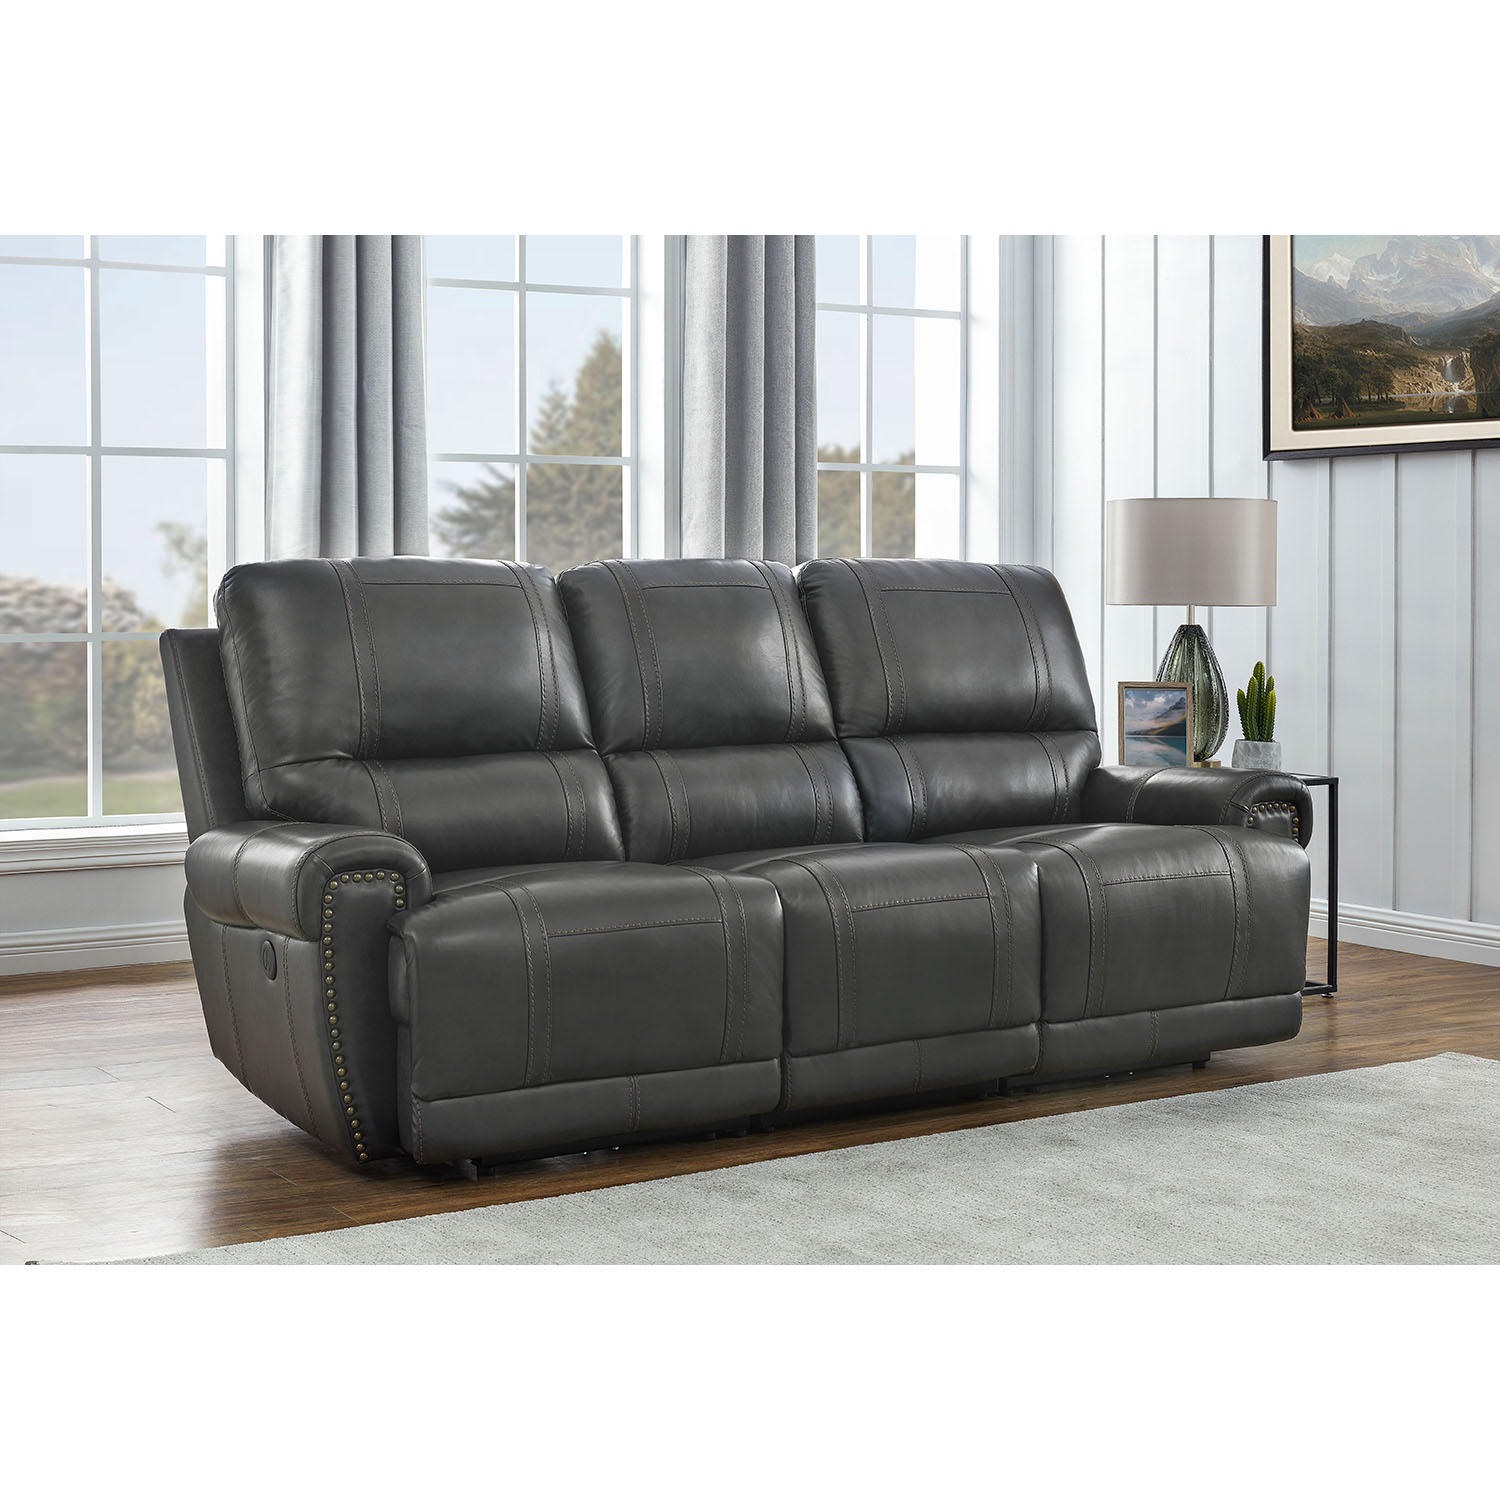 Home Meridian Holstead Top-Grain Leather Power Reclining Sofa (Charcoal)